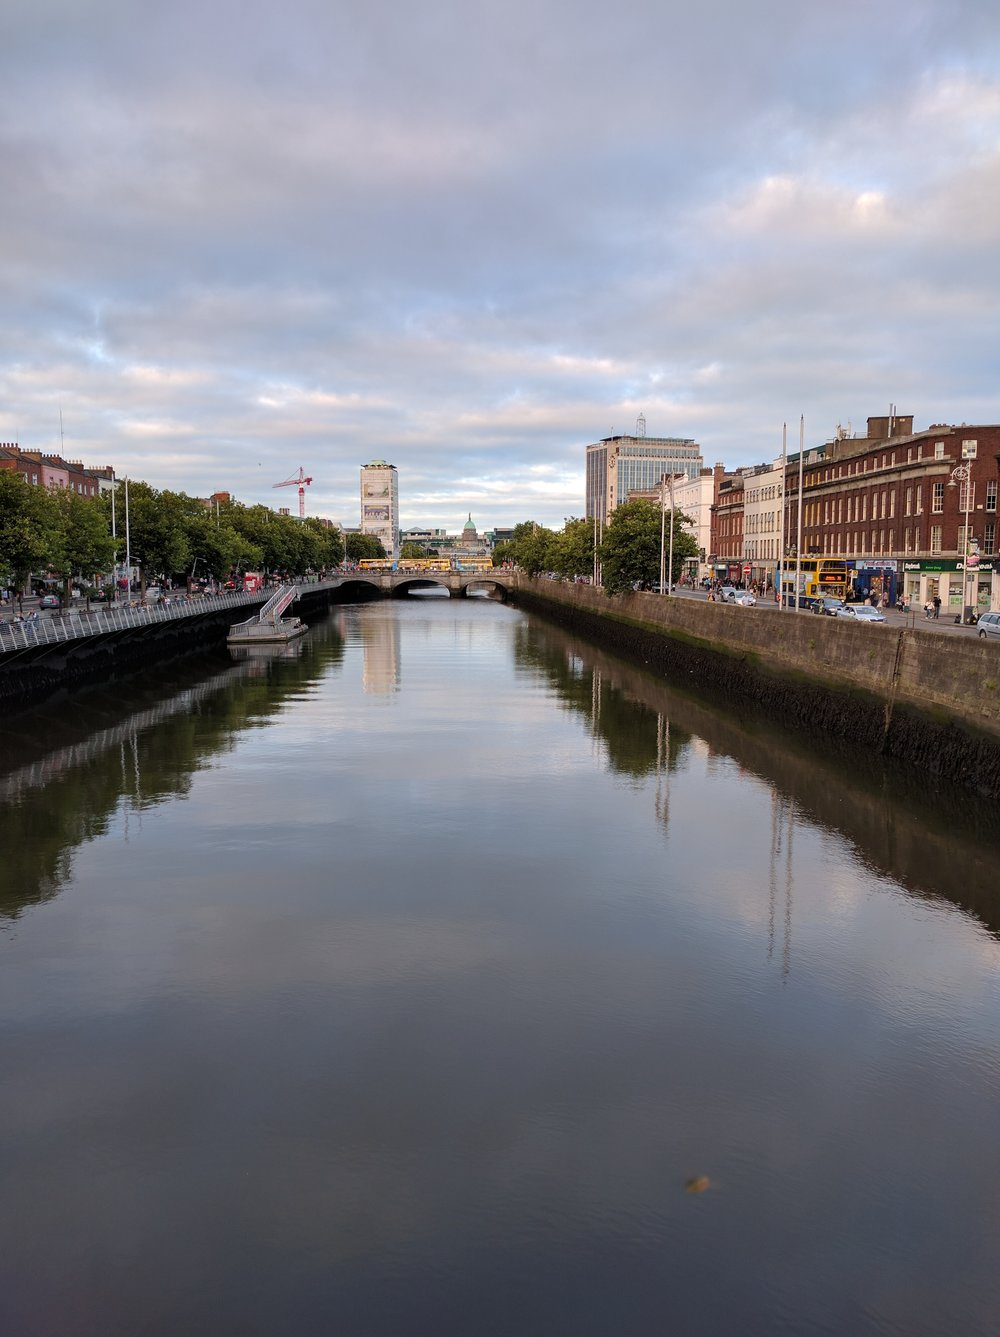 The River Liffey through Dublin